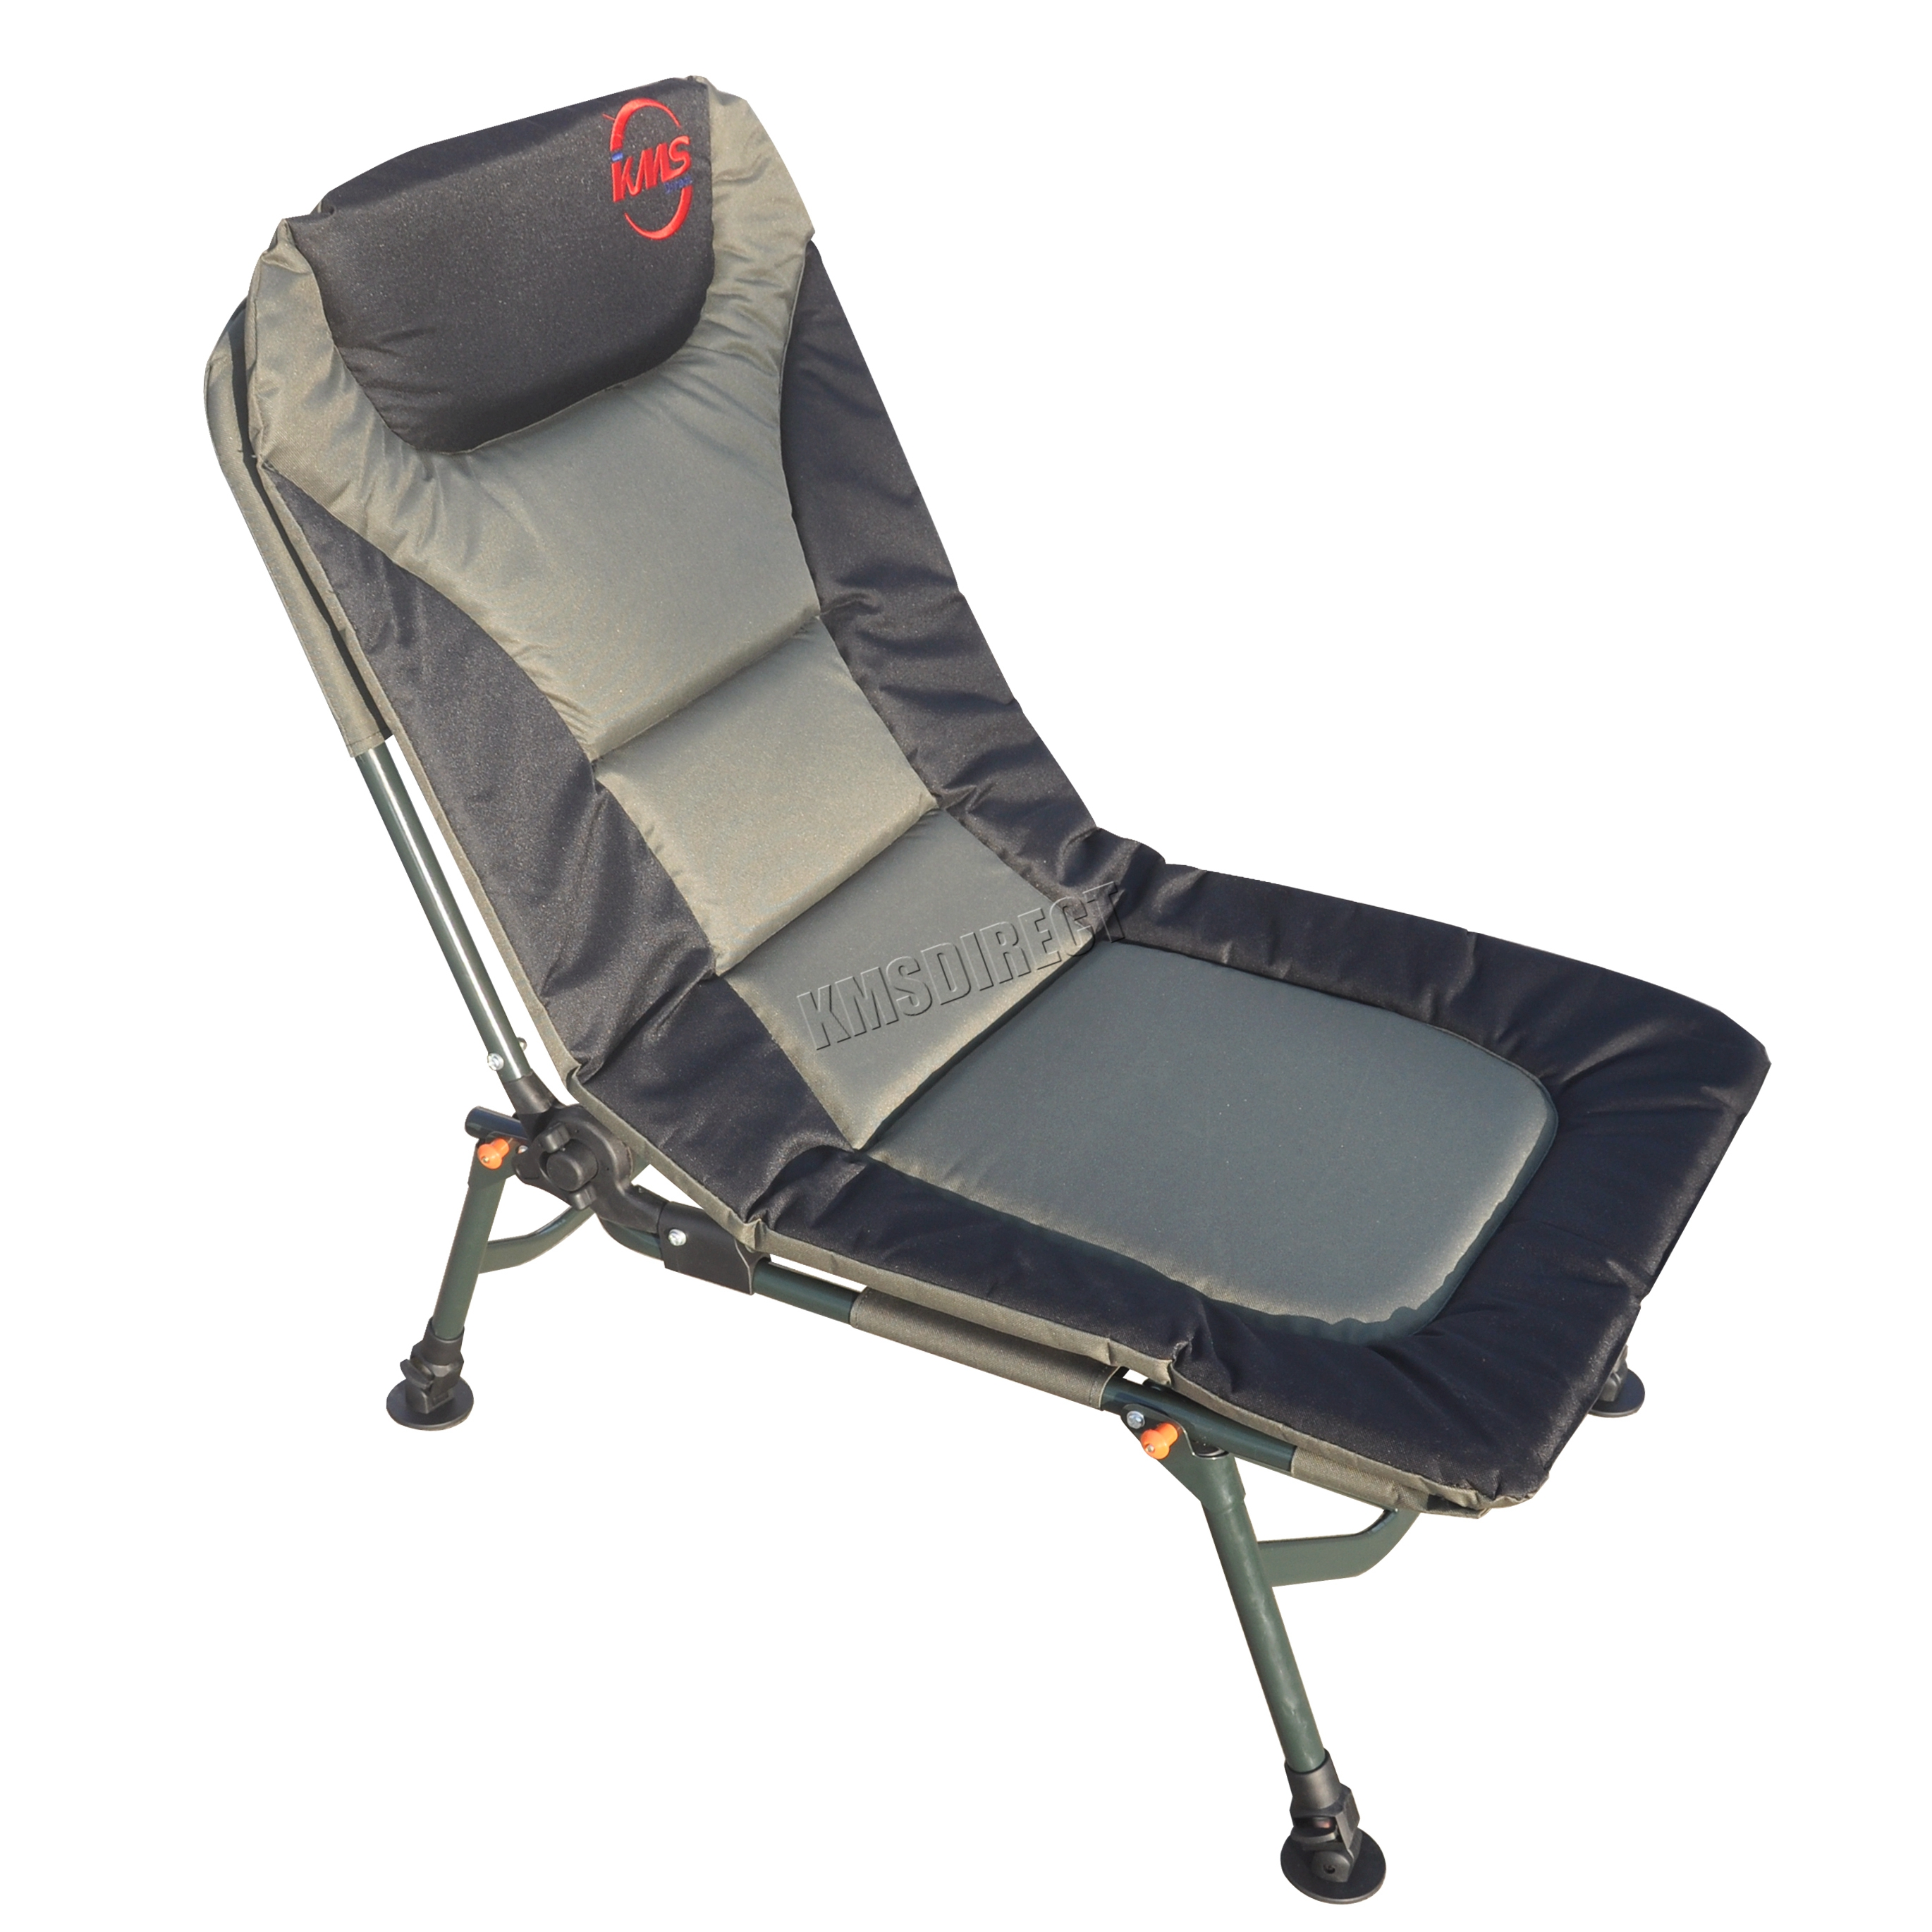 fishing chair bed reviews mjm international shower outdoor folding camping recliner 4